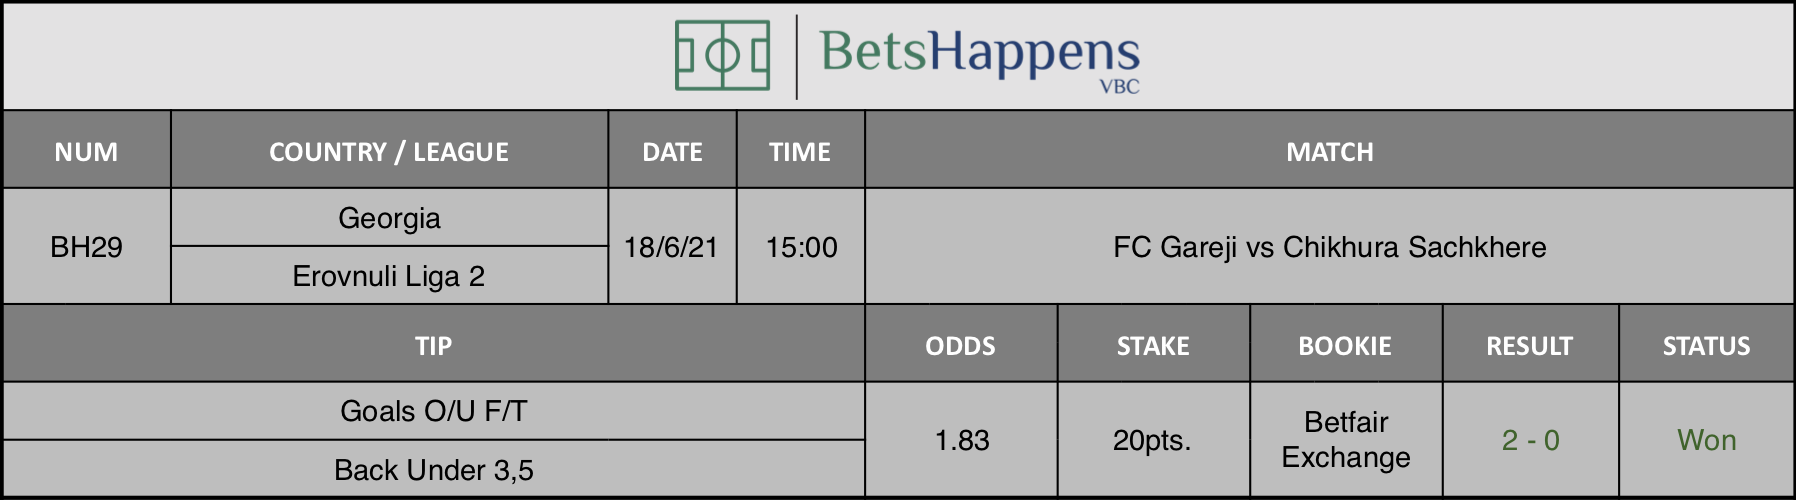 Results of our tip for the FC Gareji vs Chikhura Sachkhere Match Goals O/U F/T Back Under 3,5 is recommended.